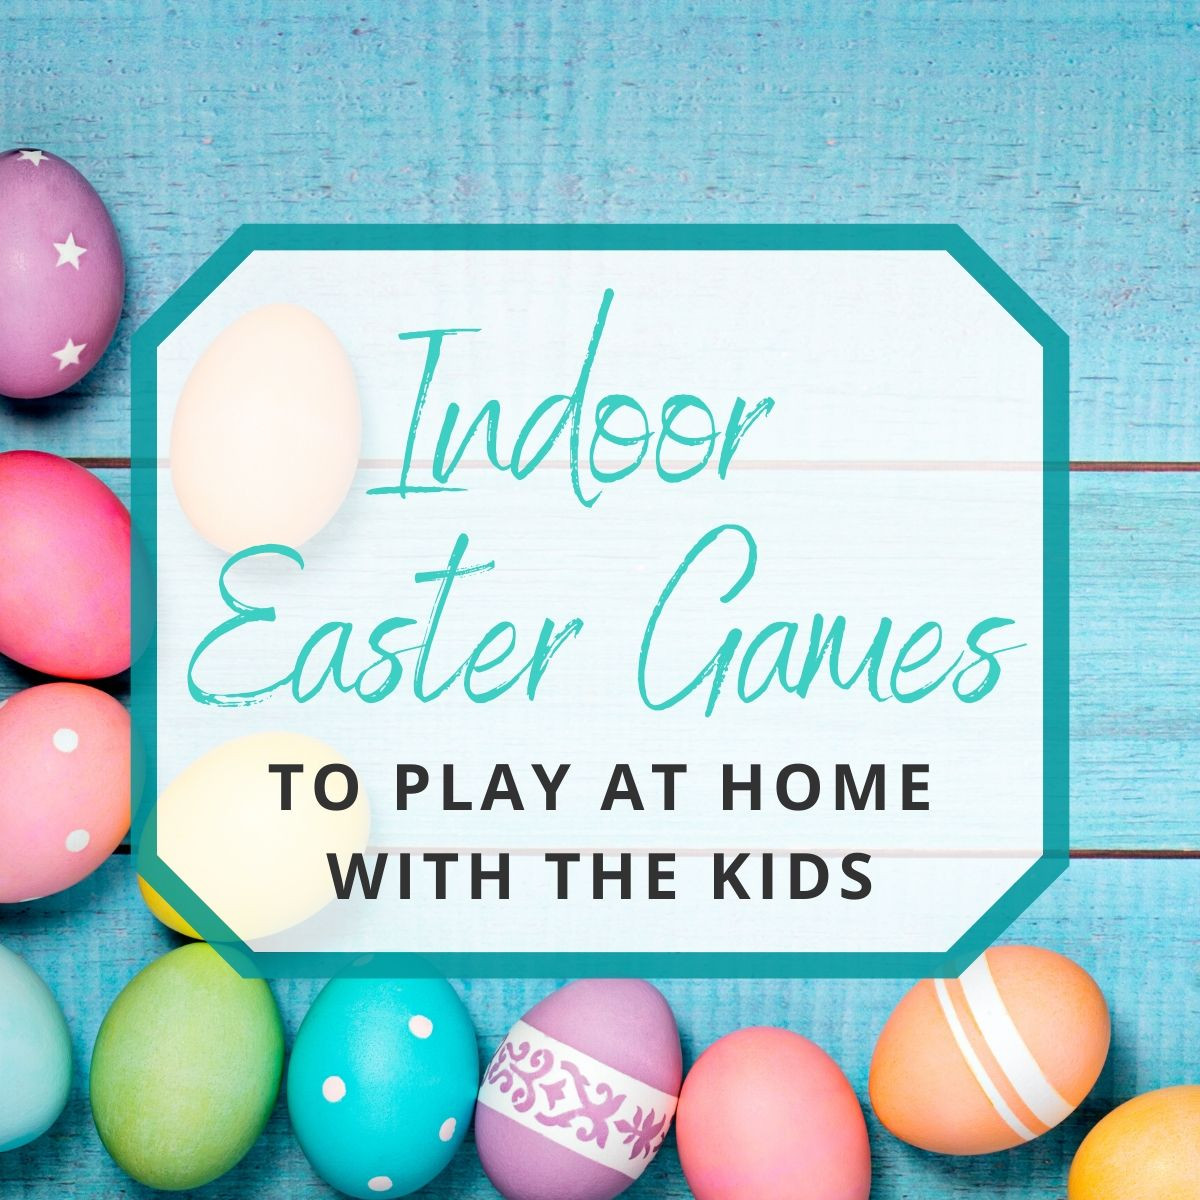 Easter Games For Kids Indoor  Indoor Easter Games to Play at Home with the Kids